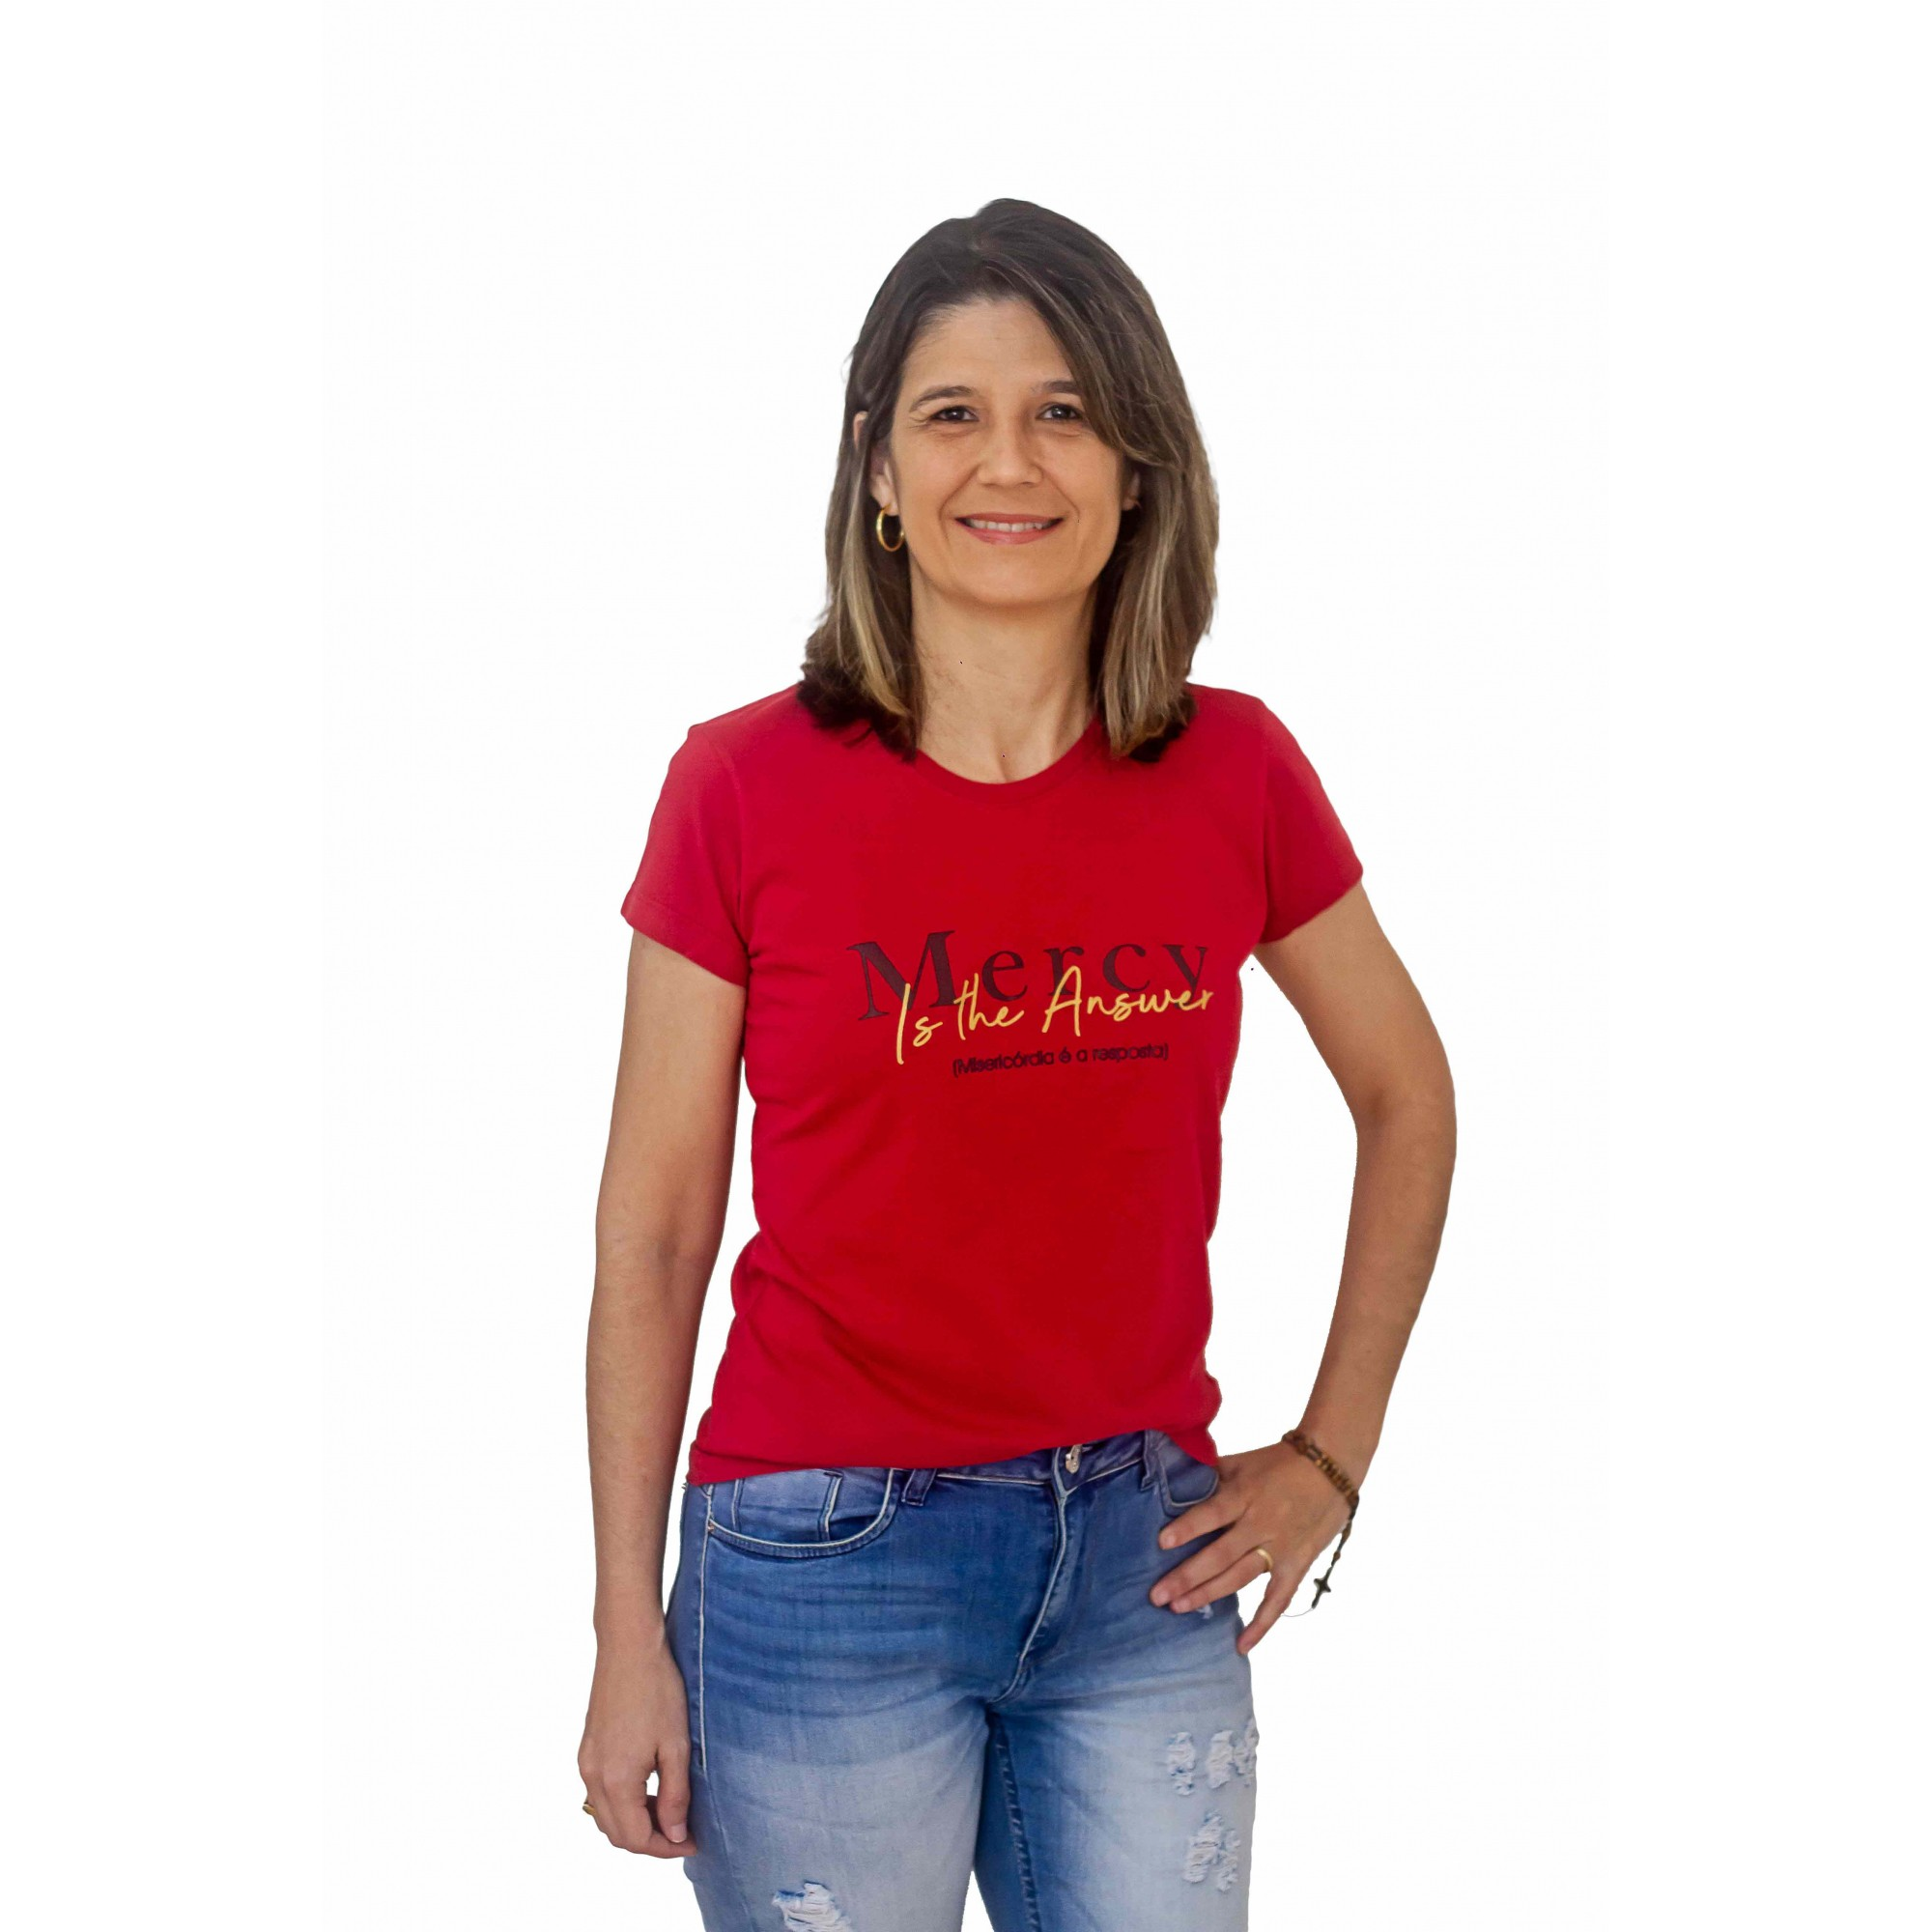 BLUSA FEMININA MERCY IS THE ANSWER BORDÔ